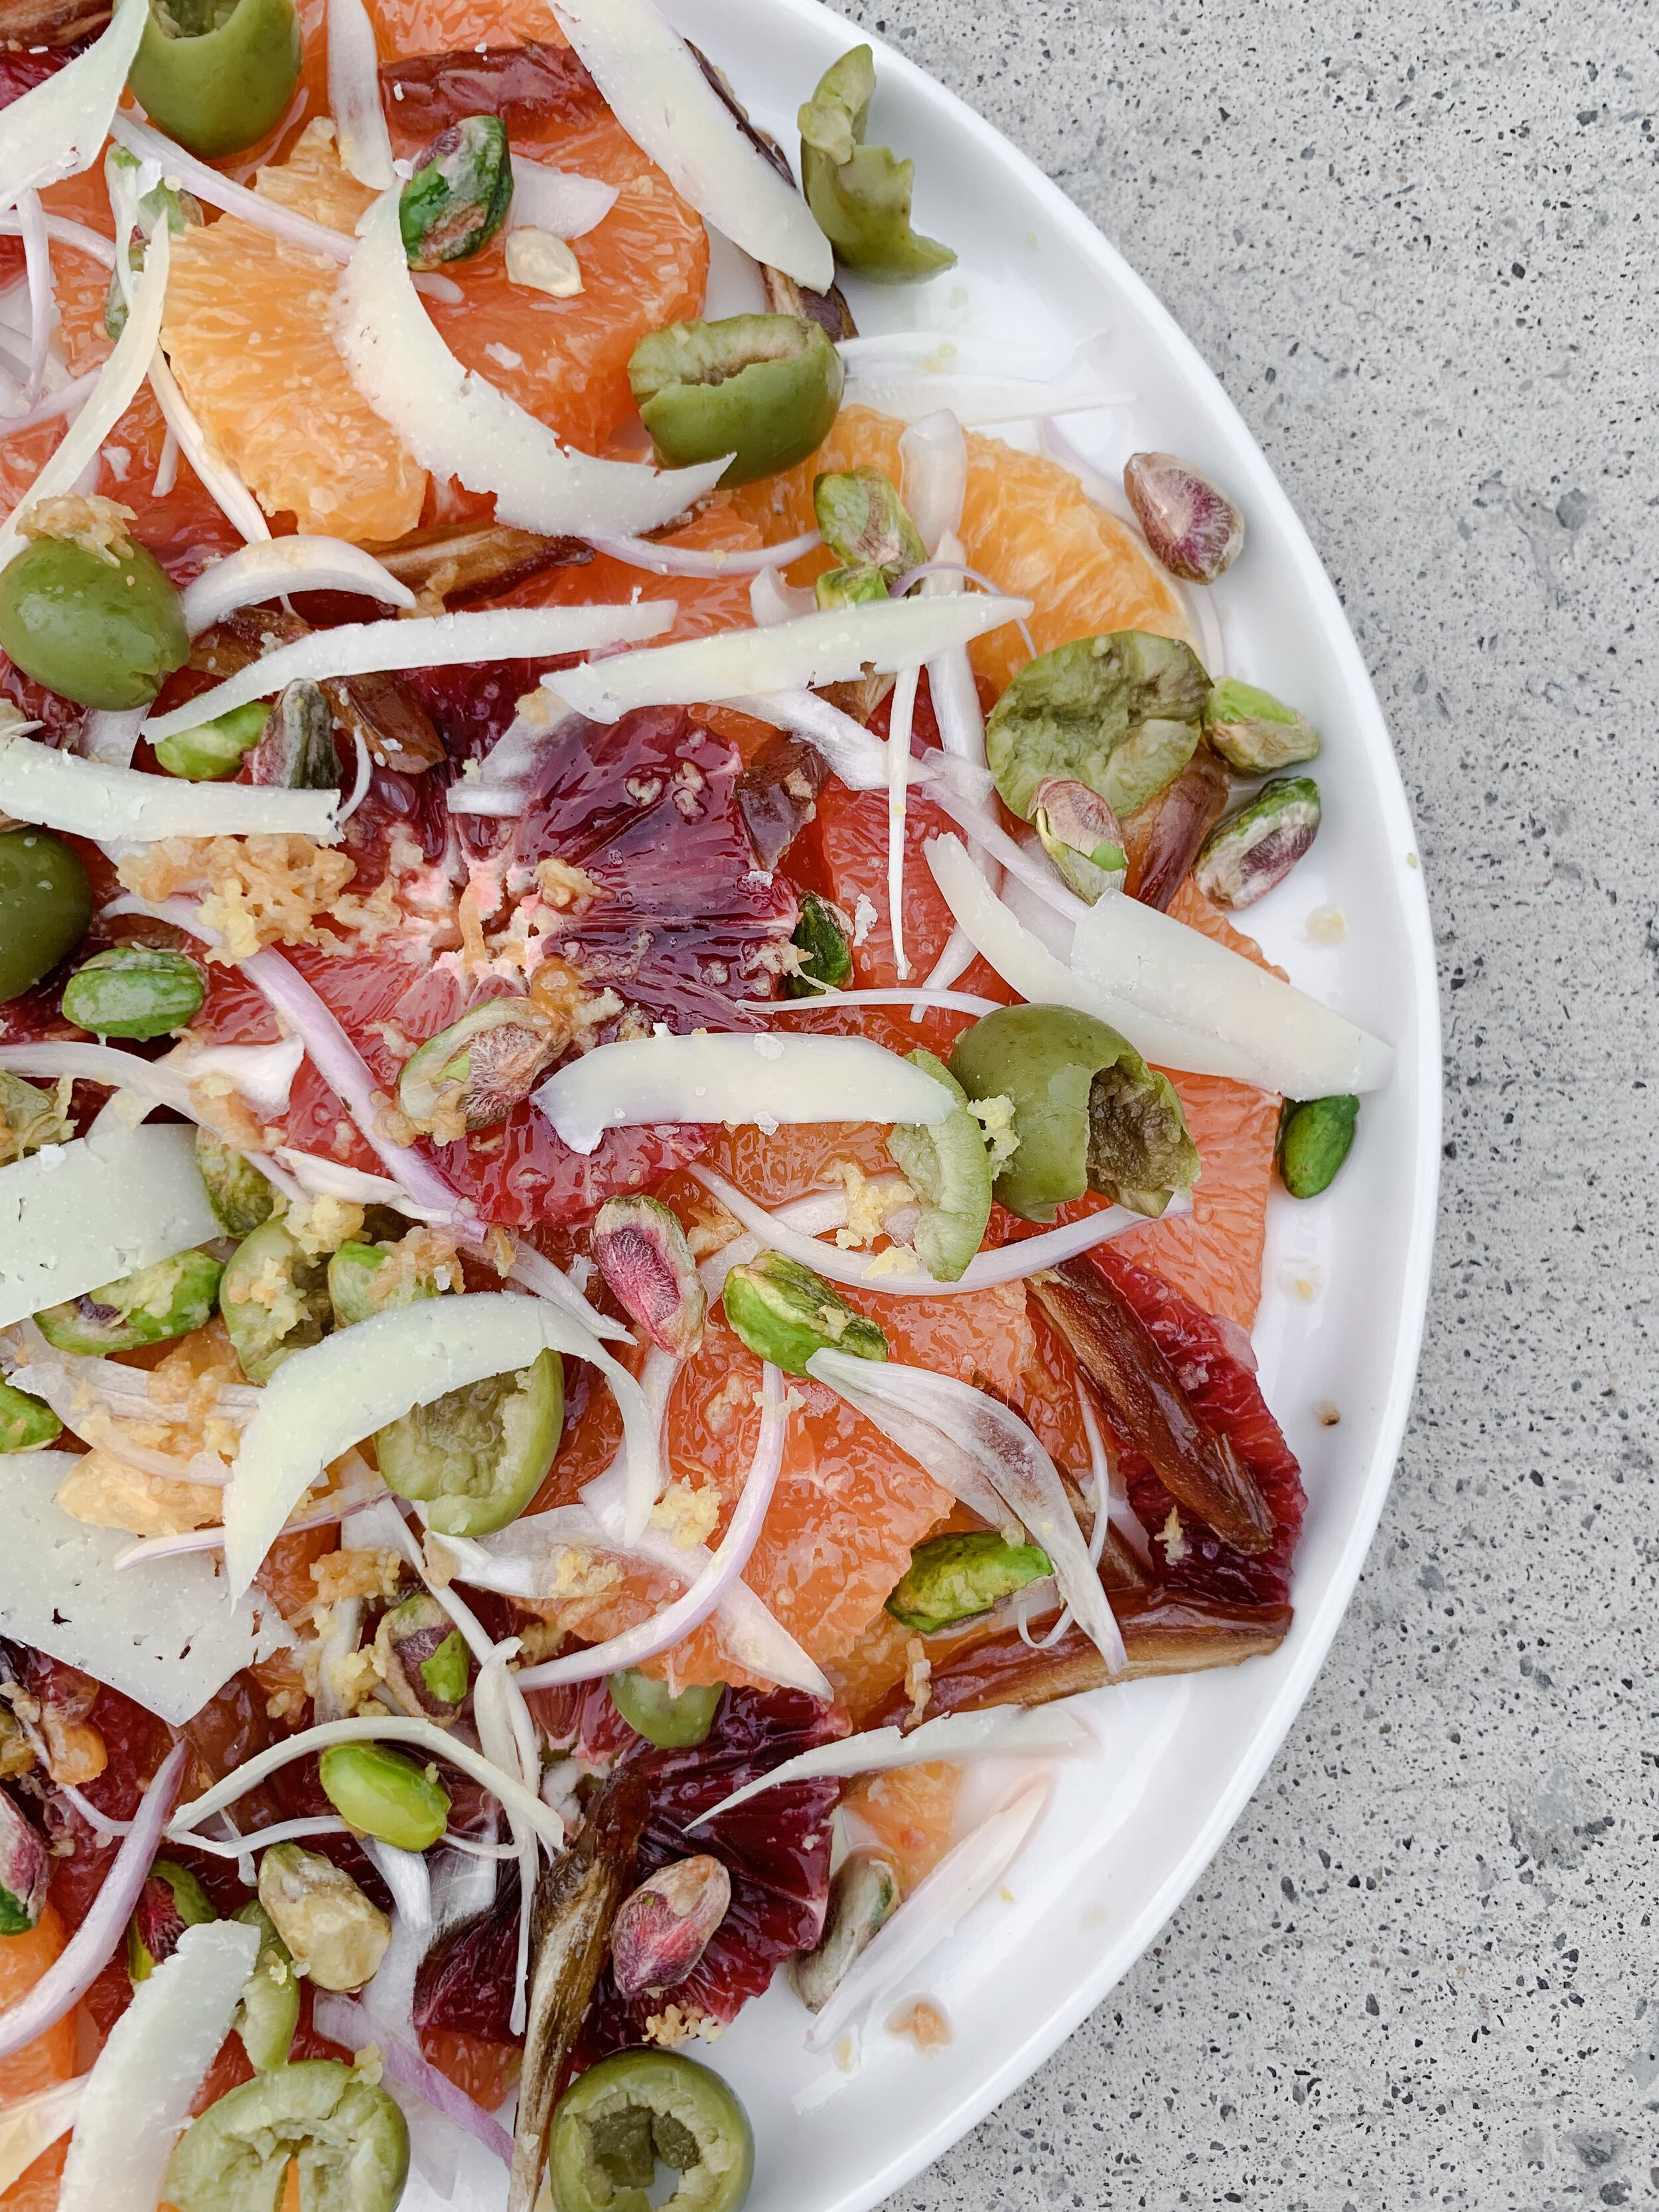 Summer Citrus Salad with Olives Dates and Cheese Personal Chef Tess Palma-Martinez New York.jpg